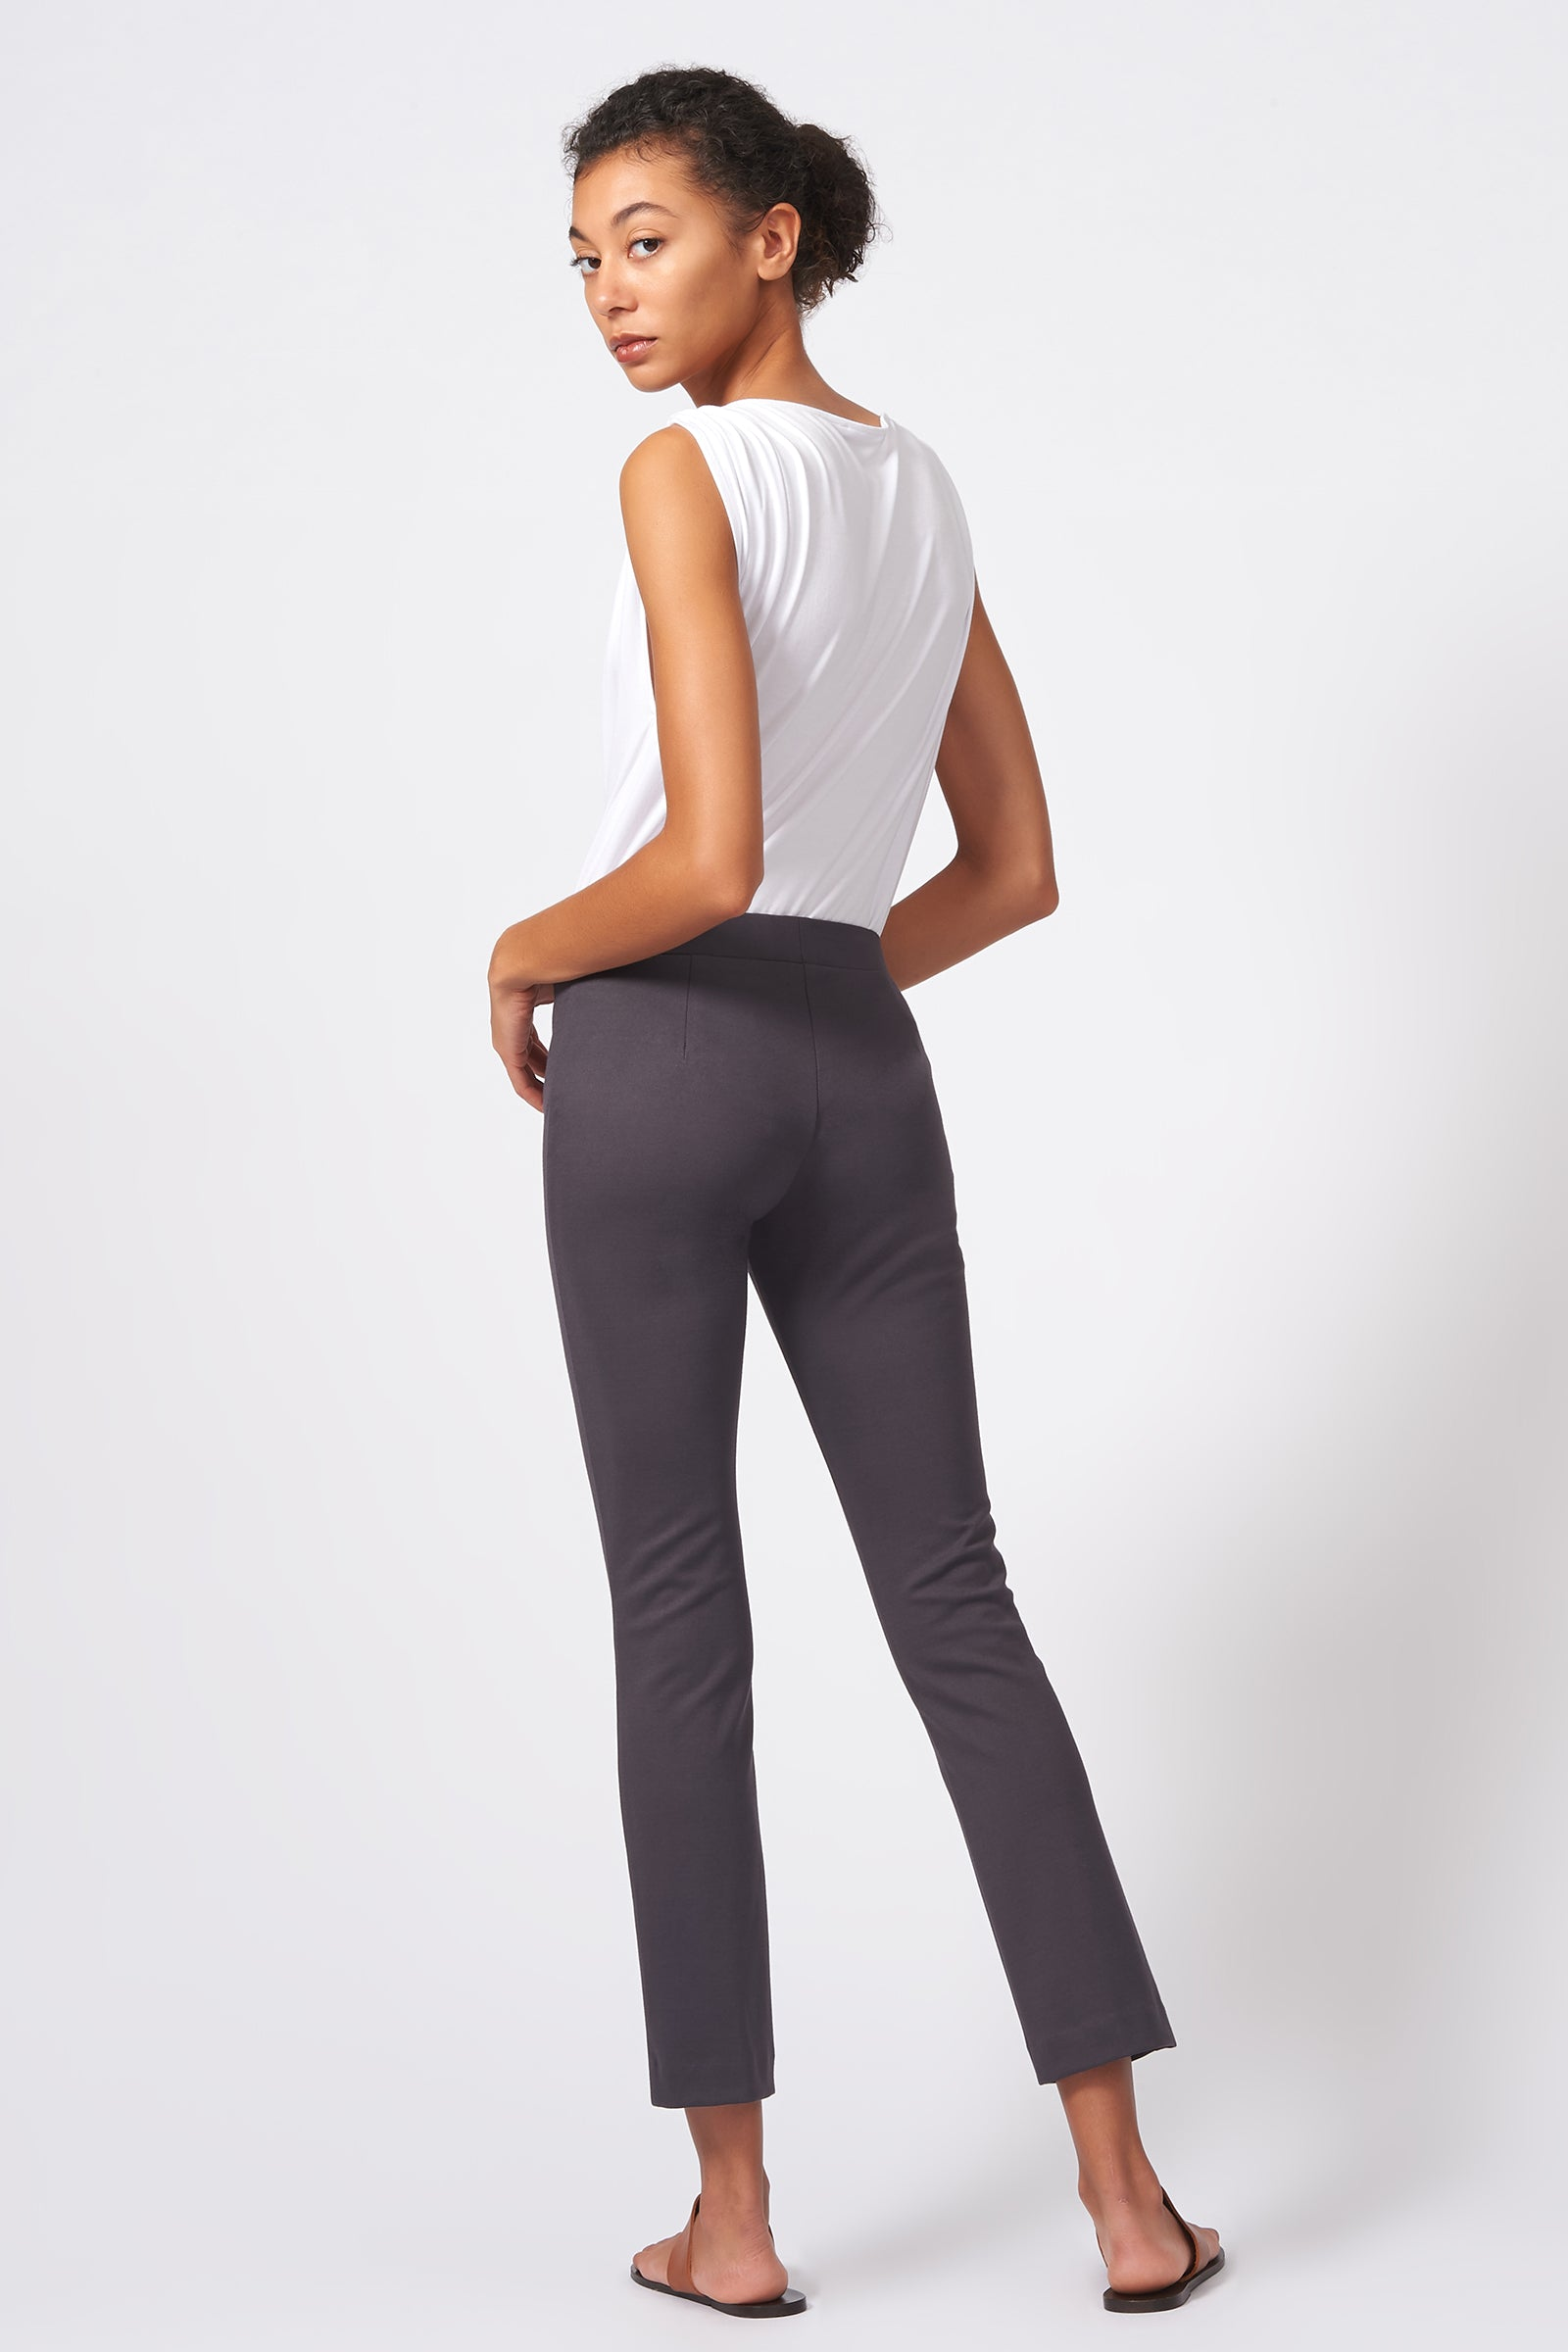 Pintuck Ponte Ankle Pant - Charcoal